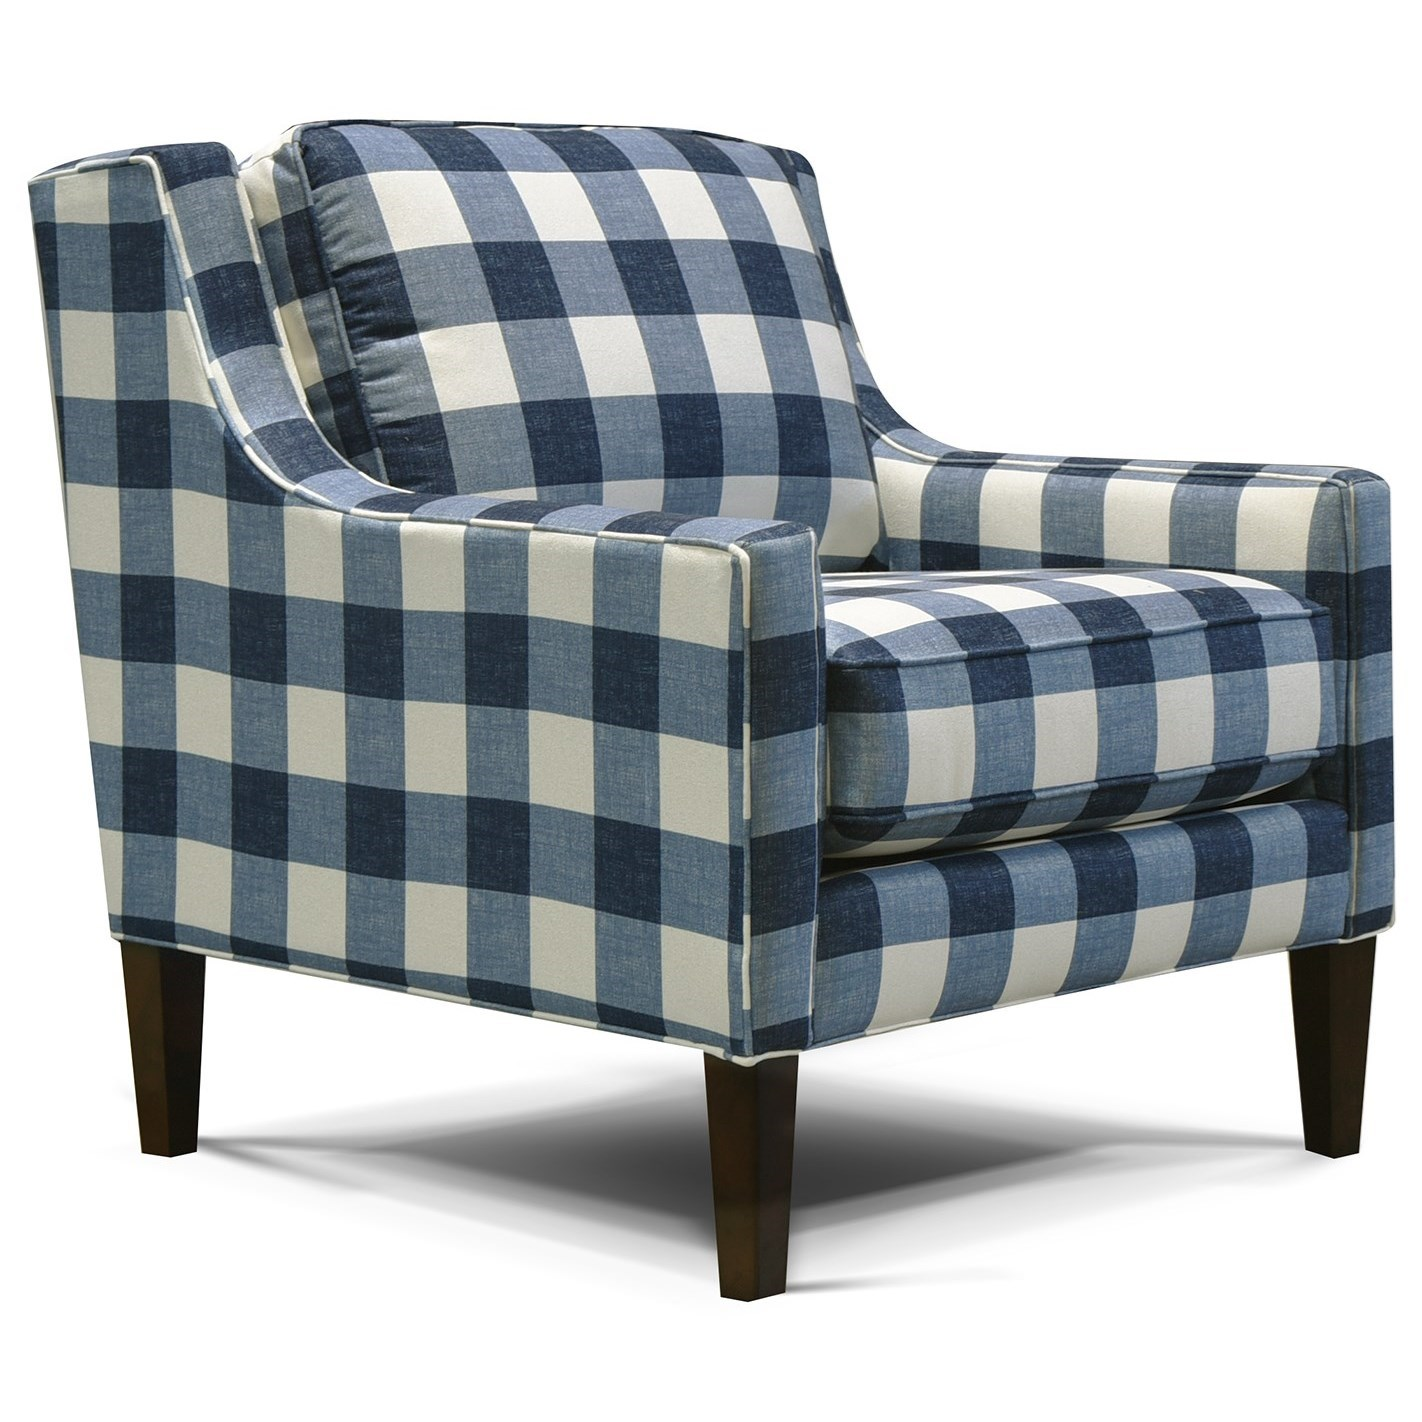 1884 and 1887 Chair by England at Rooms for Less